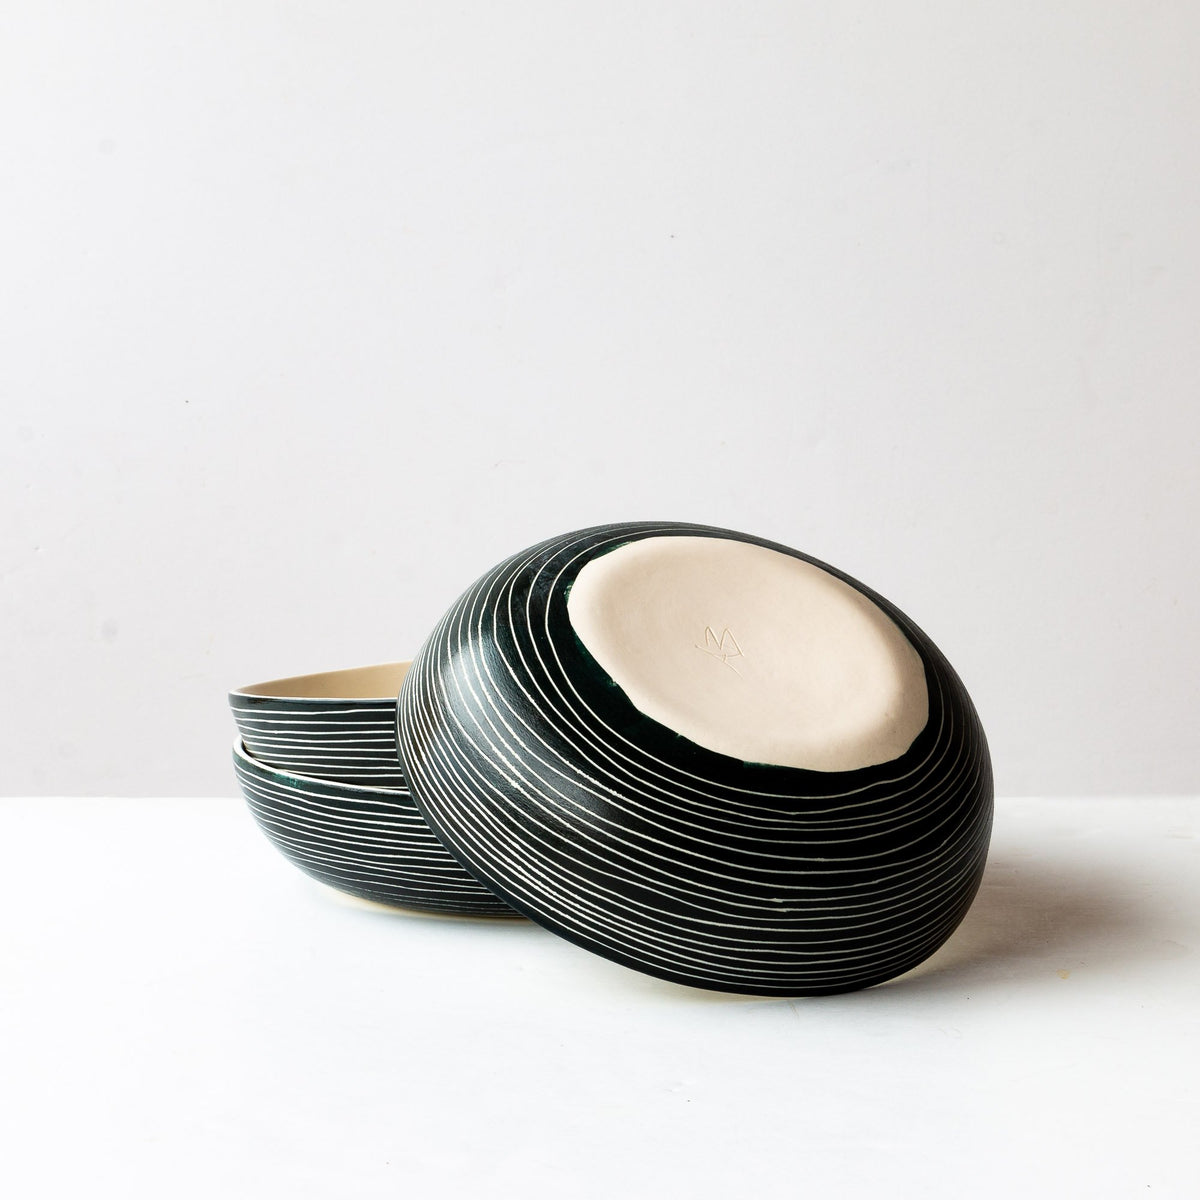 Back View - Hand Carved Ceramic Pasta / Salad Bowl With Stripes - Sold by Chic & Basta